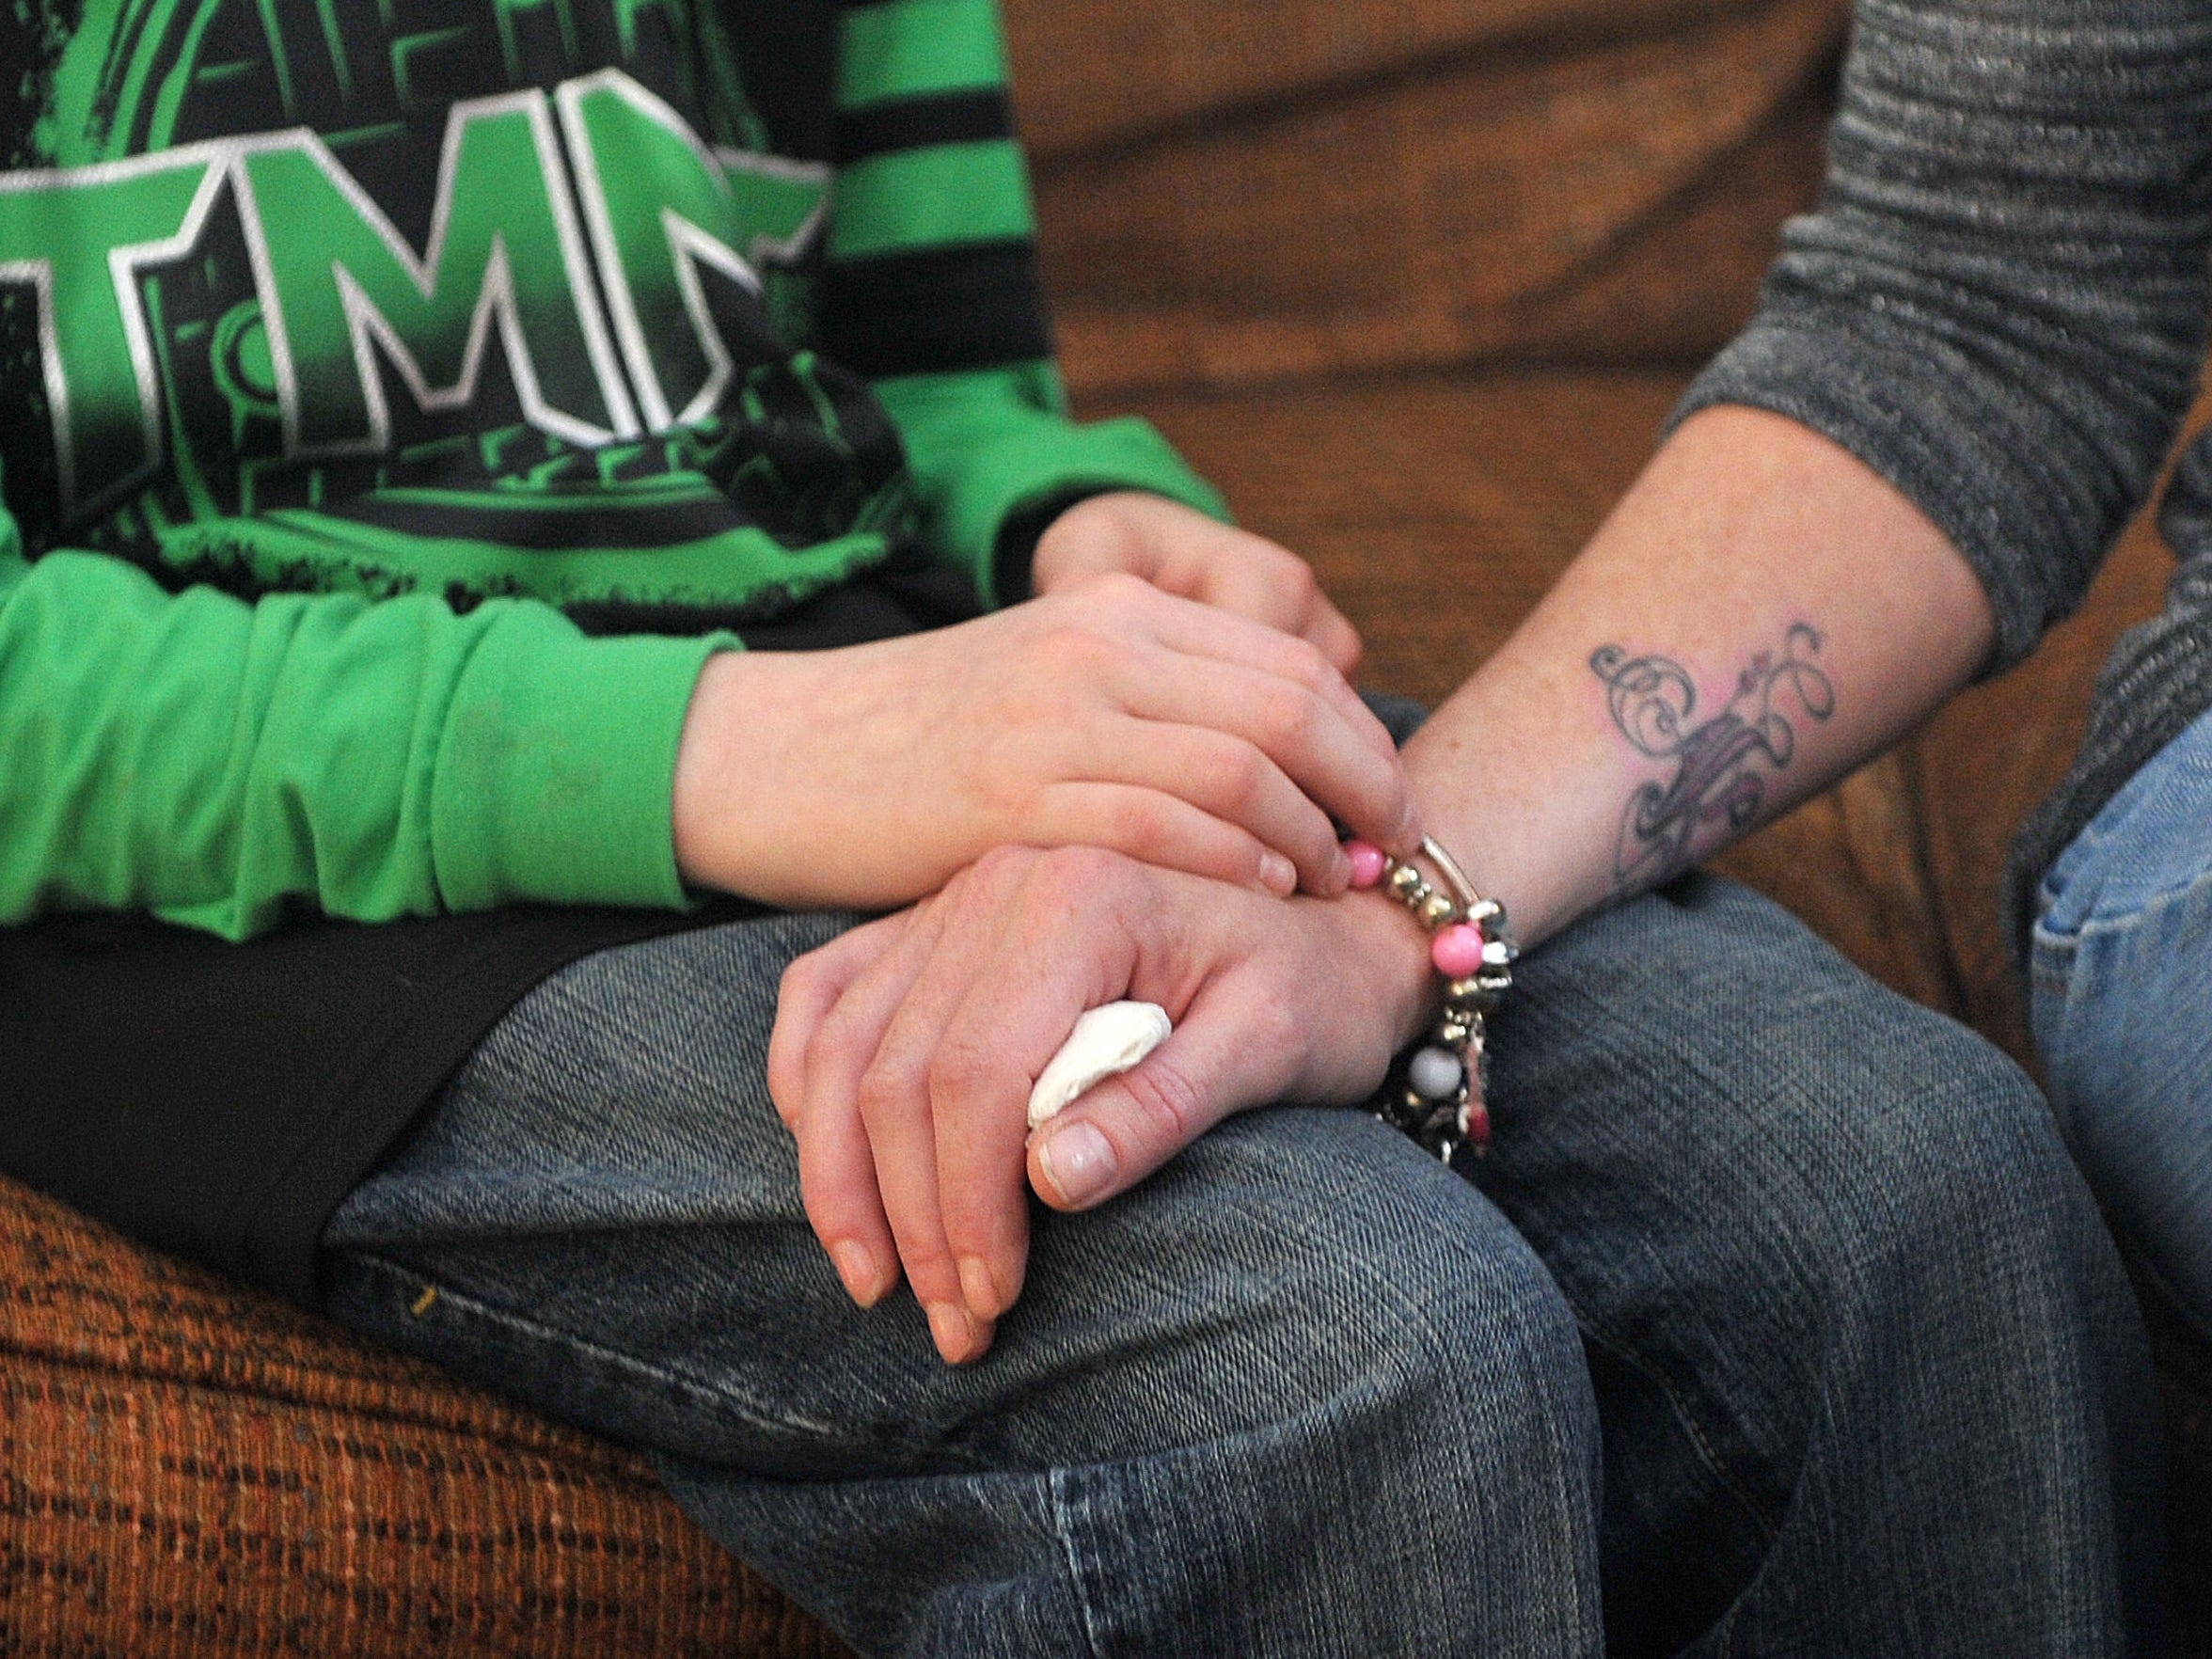 Kristen Shearer rests her hand on her son's knee, Kaleb,